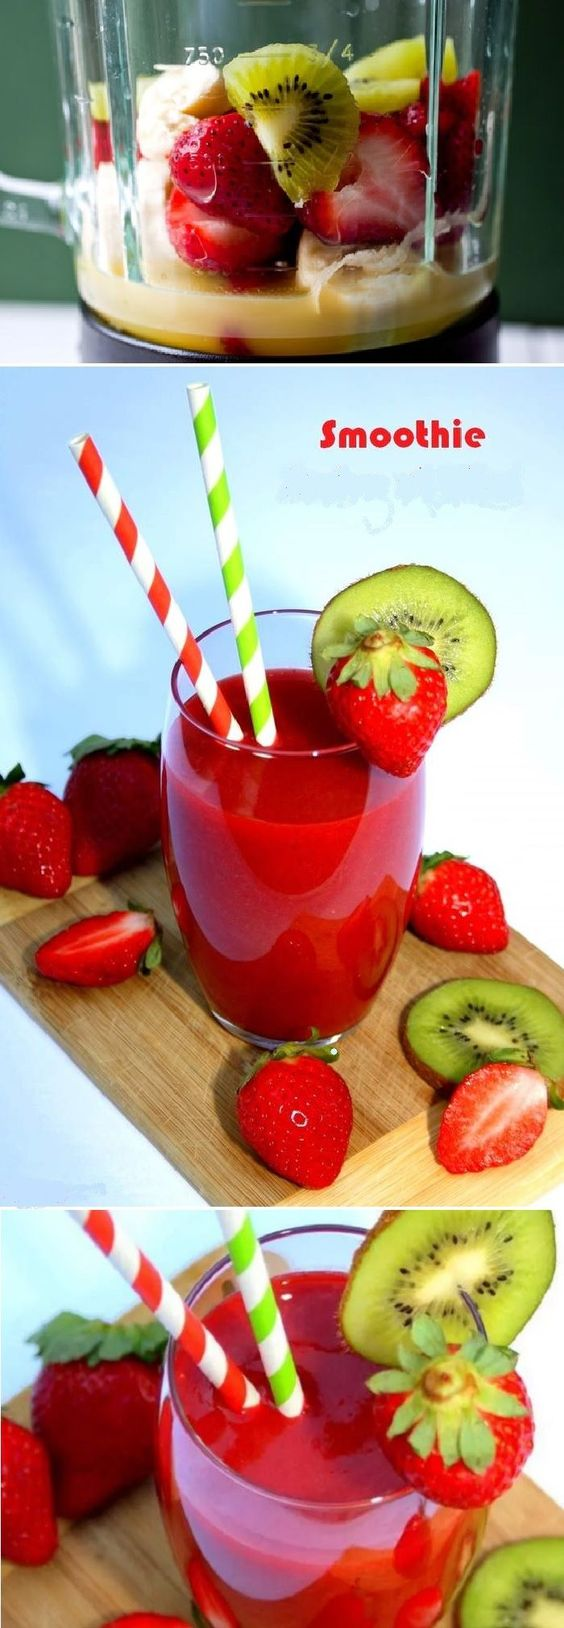 Strawberry and Kiwi Smoothie | Recipe | Kiwi, Smoothie and Vitamins